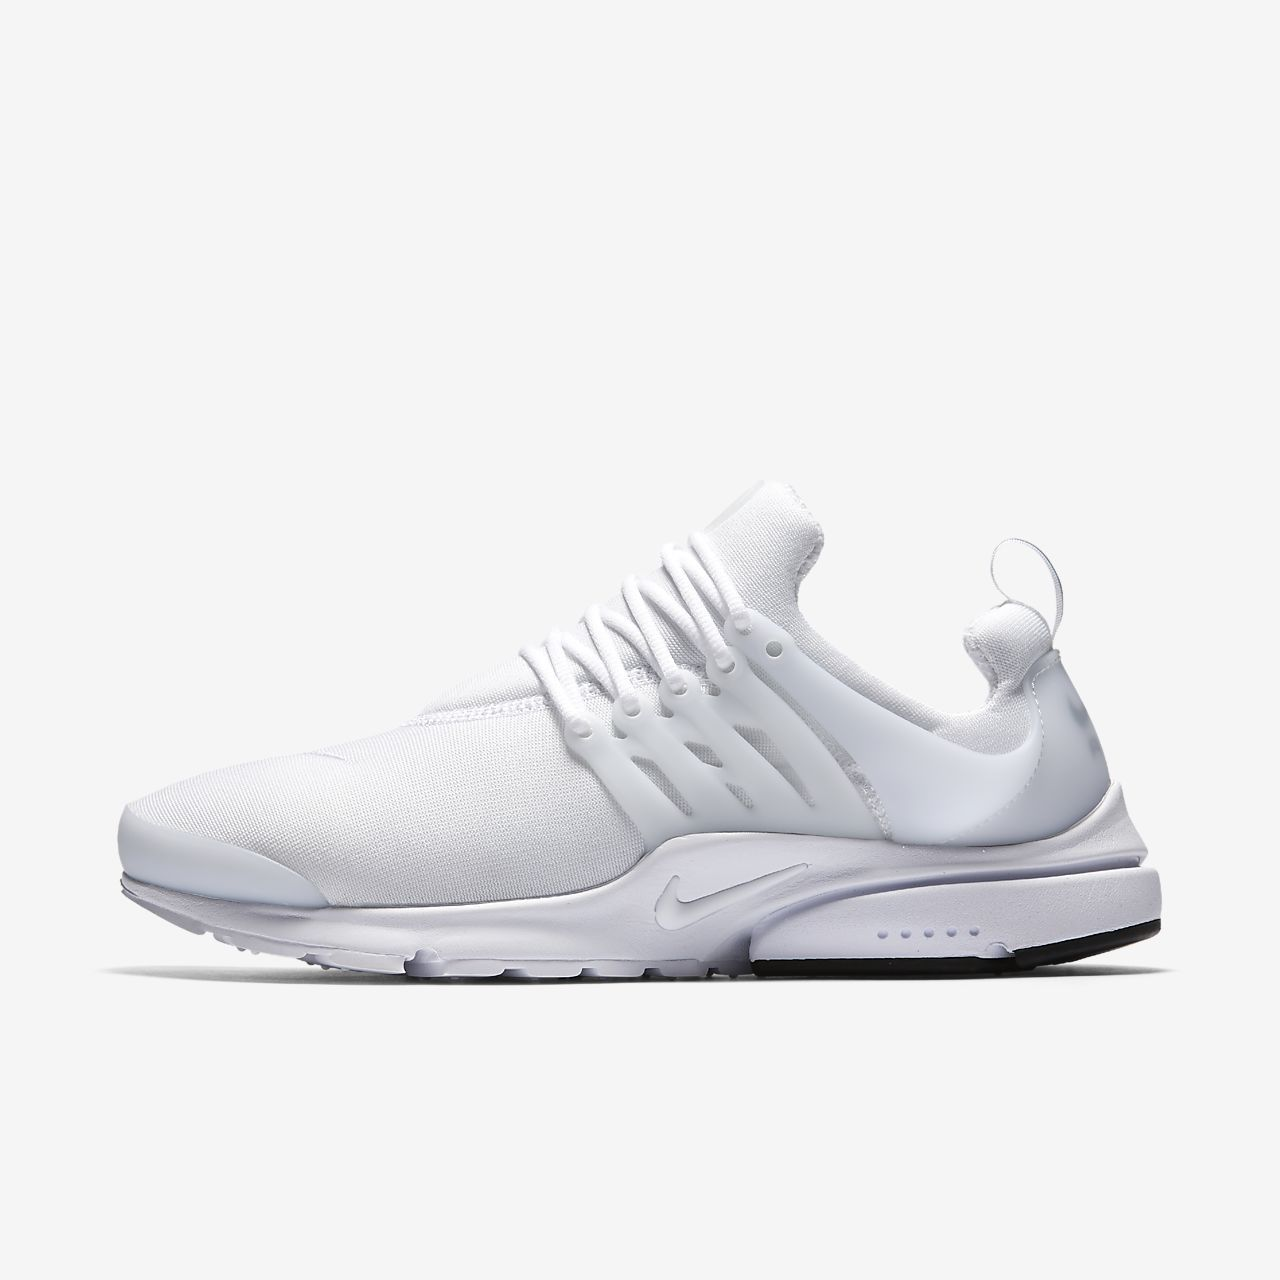 check out arriving new release Nike Air Presto Essential Men's Shoe in 2019 | Nike air ...